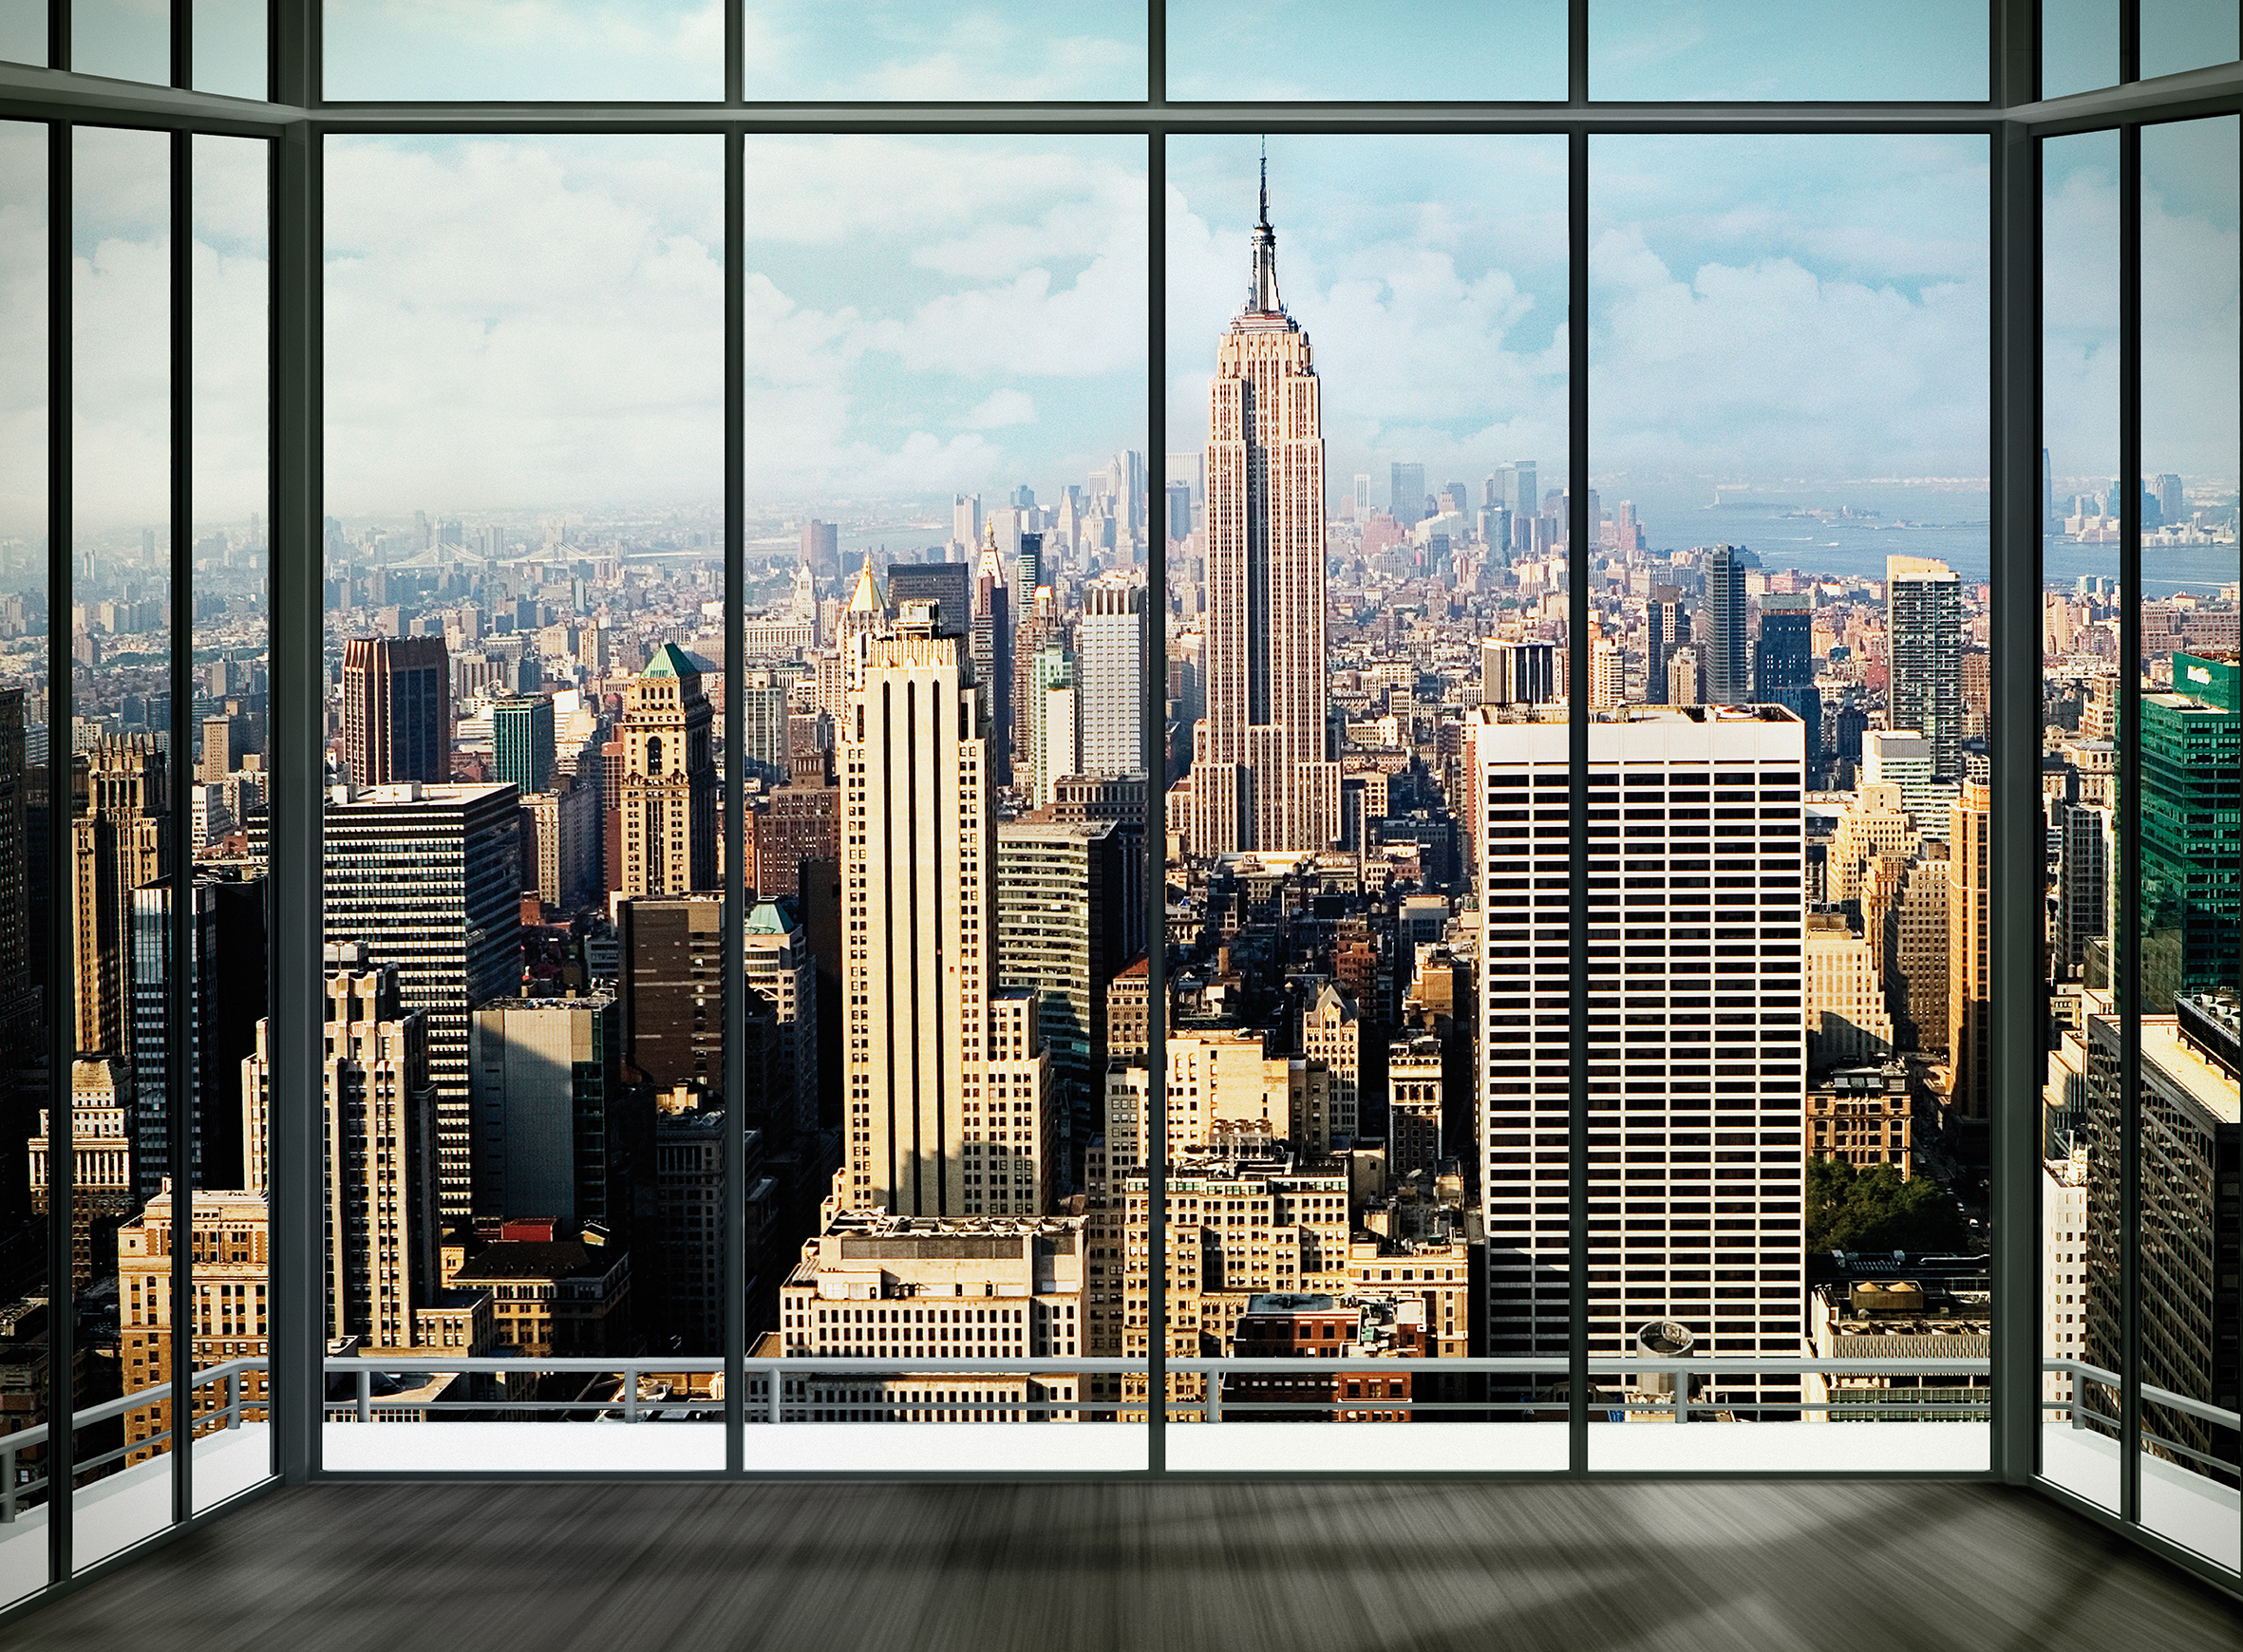 Wallpaper Murals Wall Mural New York Skyline Window 2362x1740